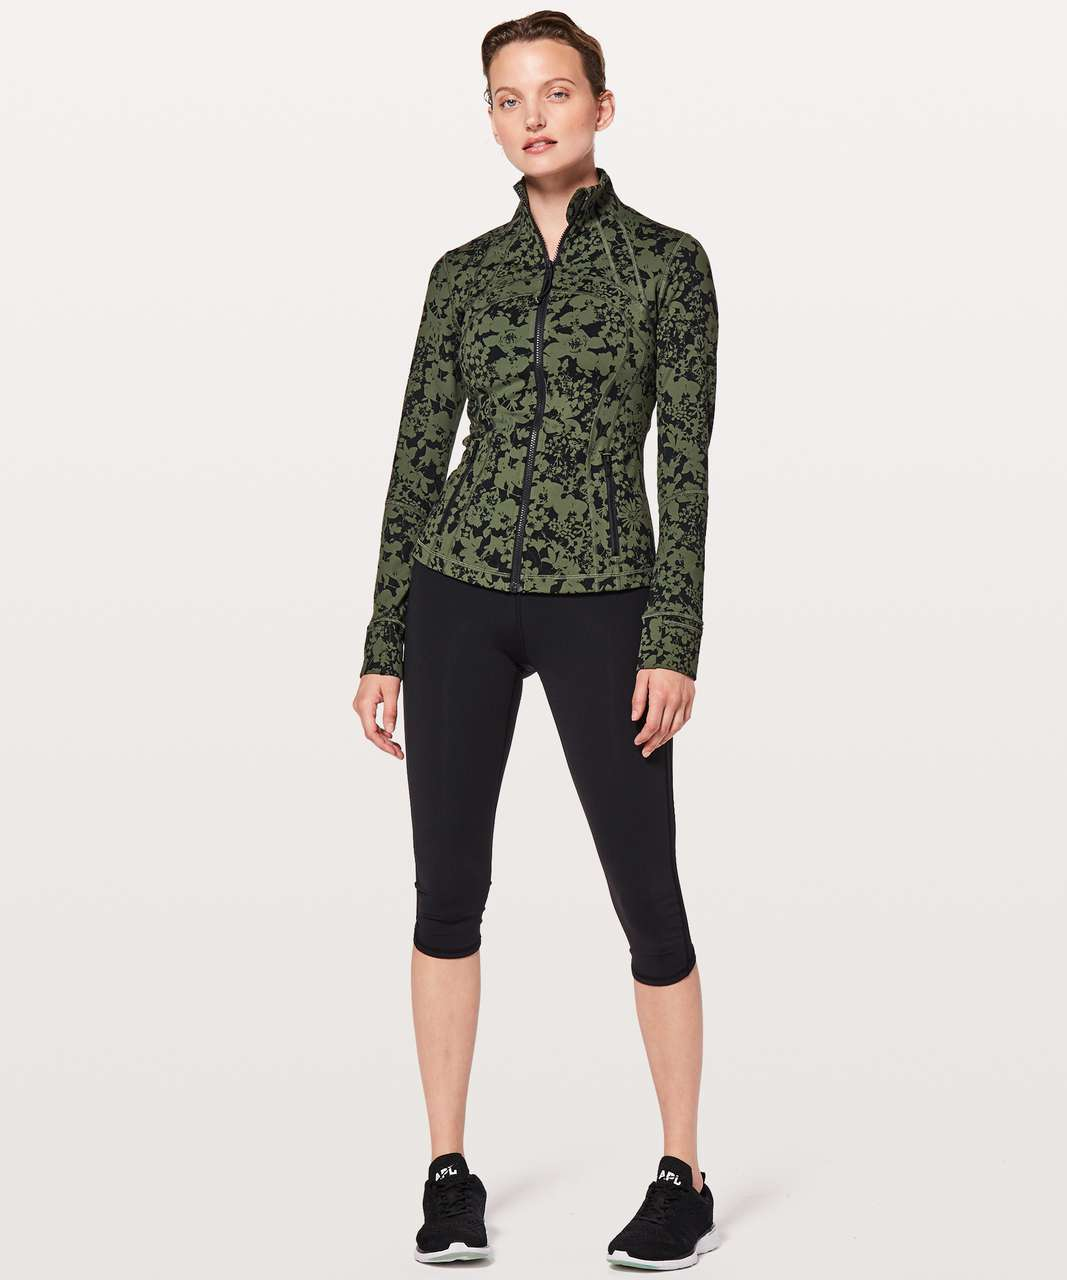 Lululemon Define Jacket - Efflorescent Barracks Green Black